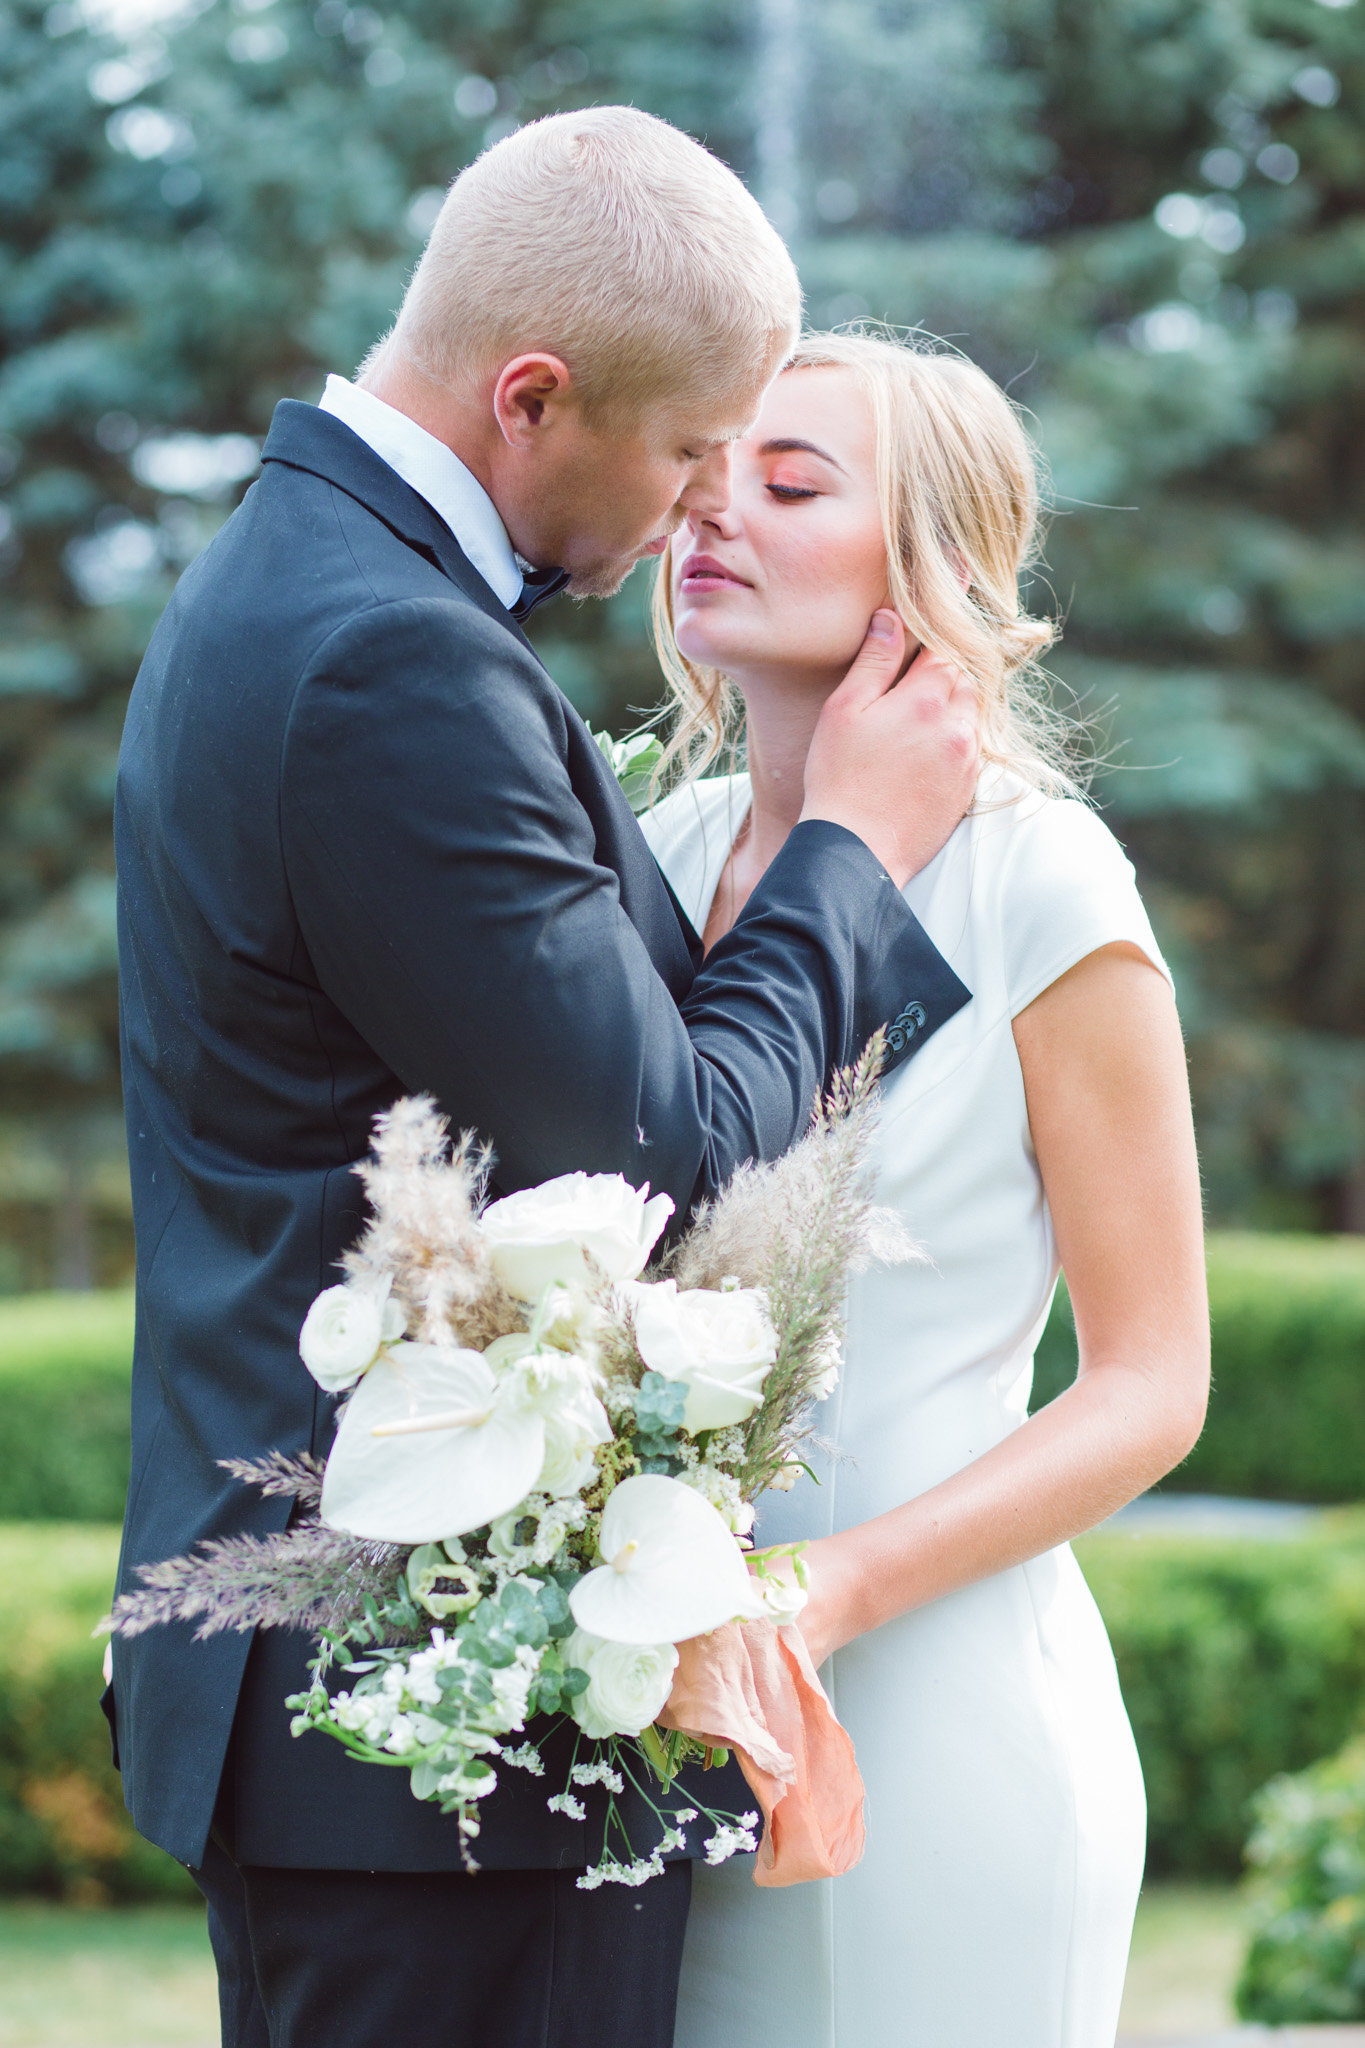 Kissing pose wedding